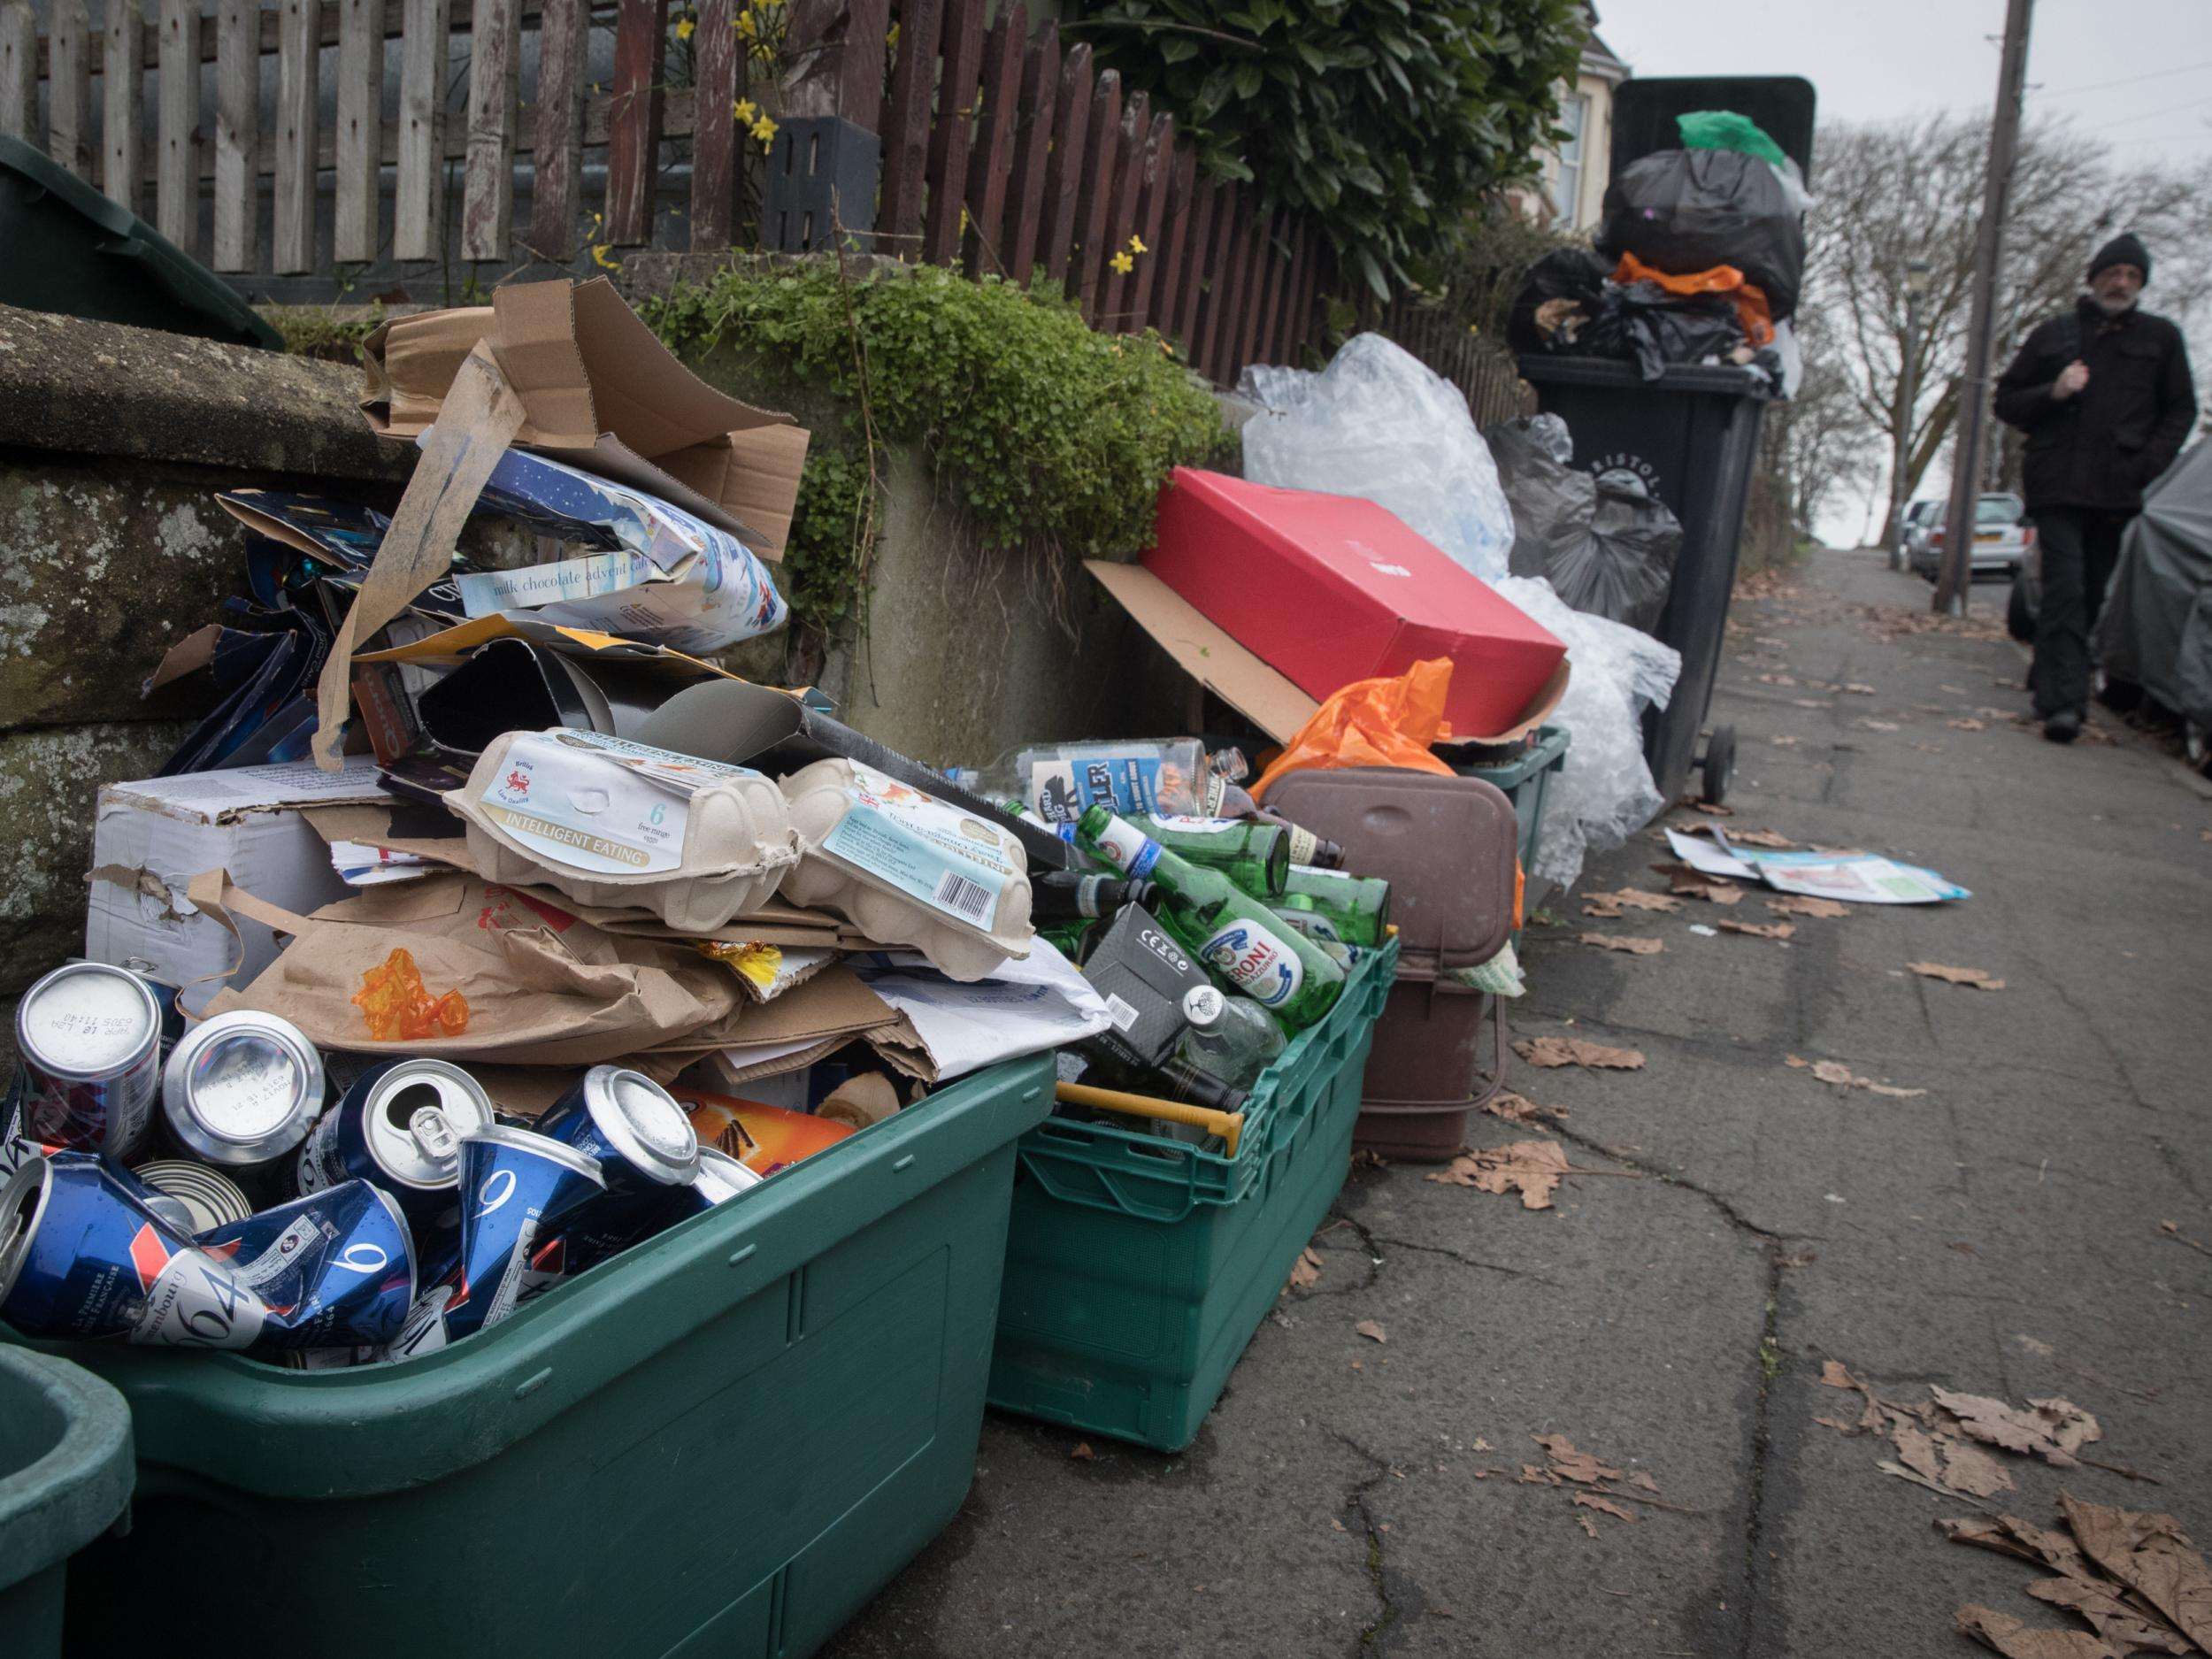 Recycling costs surge for UK councils after Chinese ban on 'foreign garbage' imports | The IndependentShapeleftrightShape